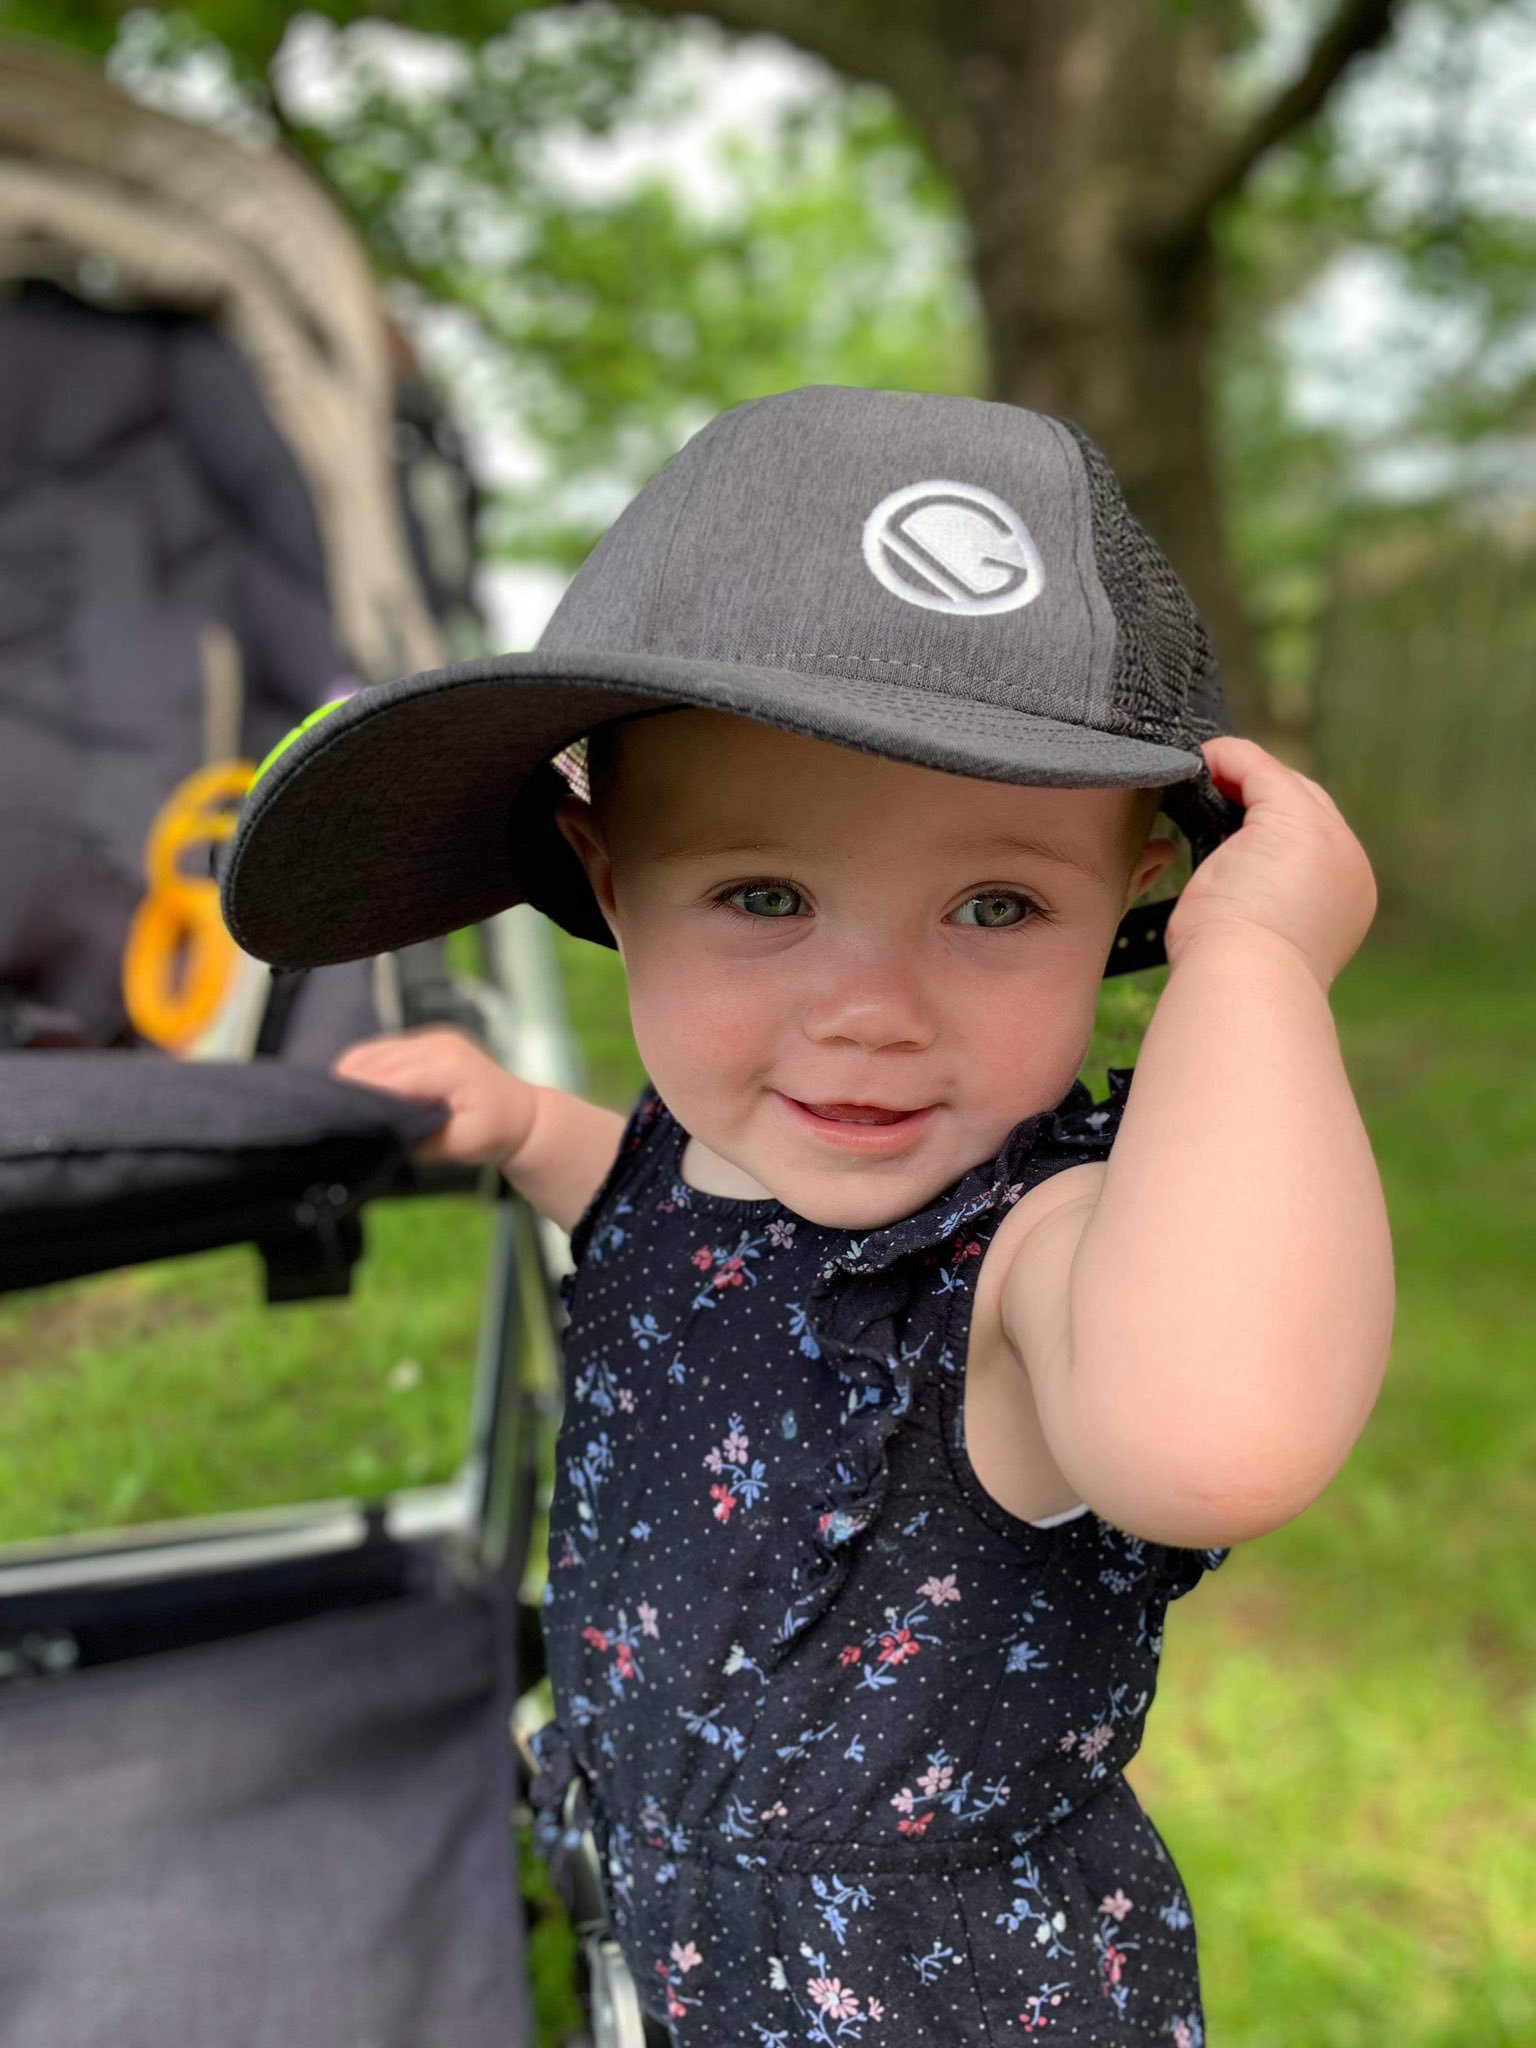 Matilda in a sick cap